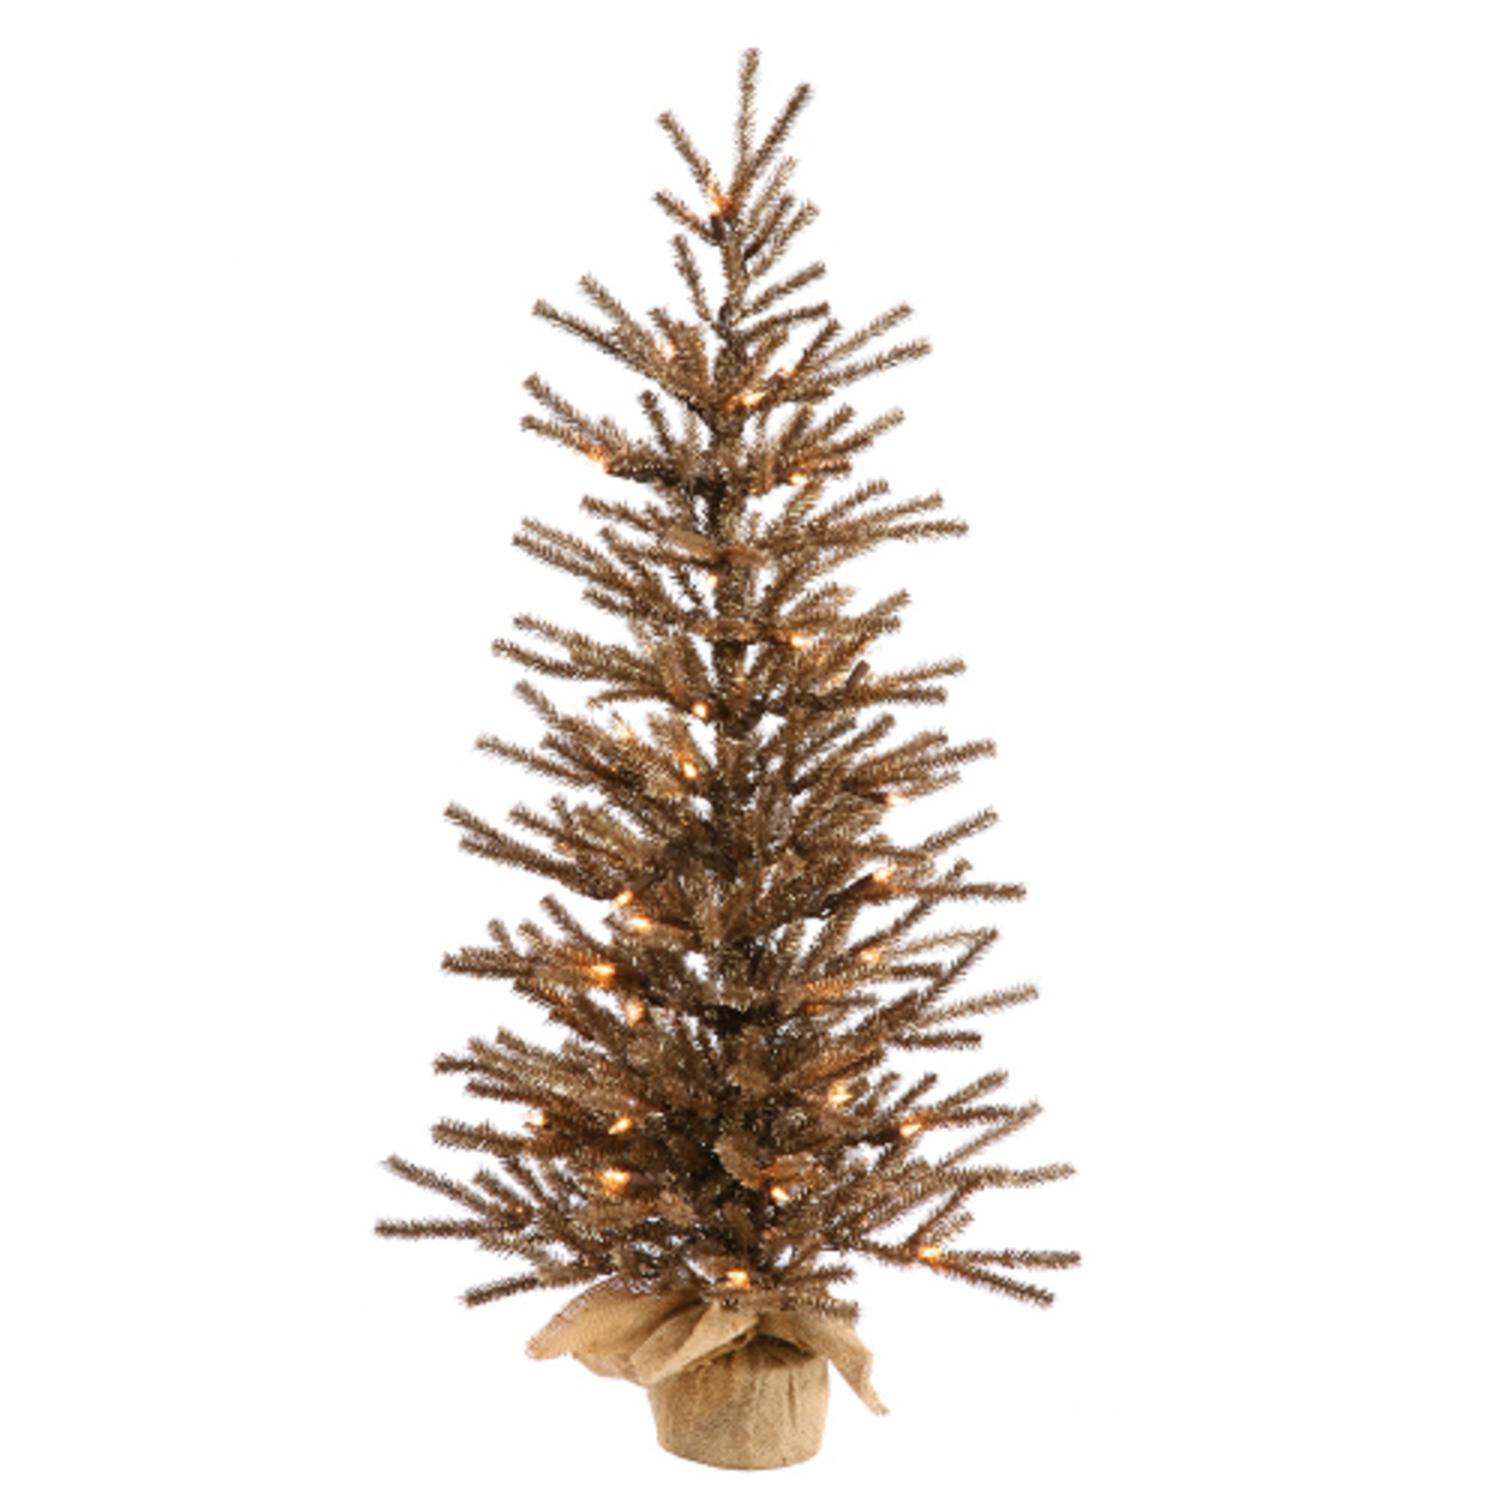 3' Pre-Lit Brown Artificial Tinsel Christmas Twig Tree in Burlap Base - Clear